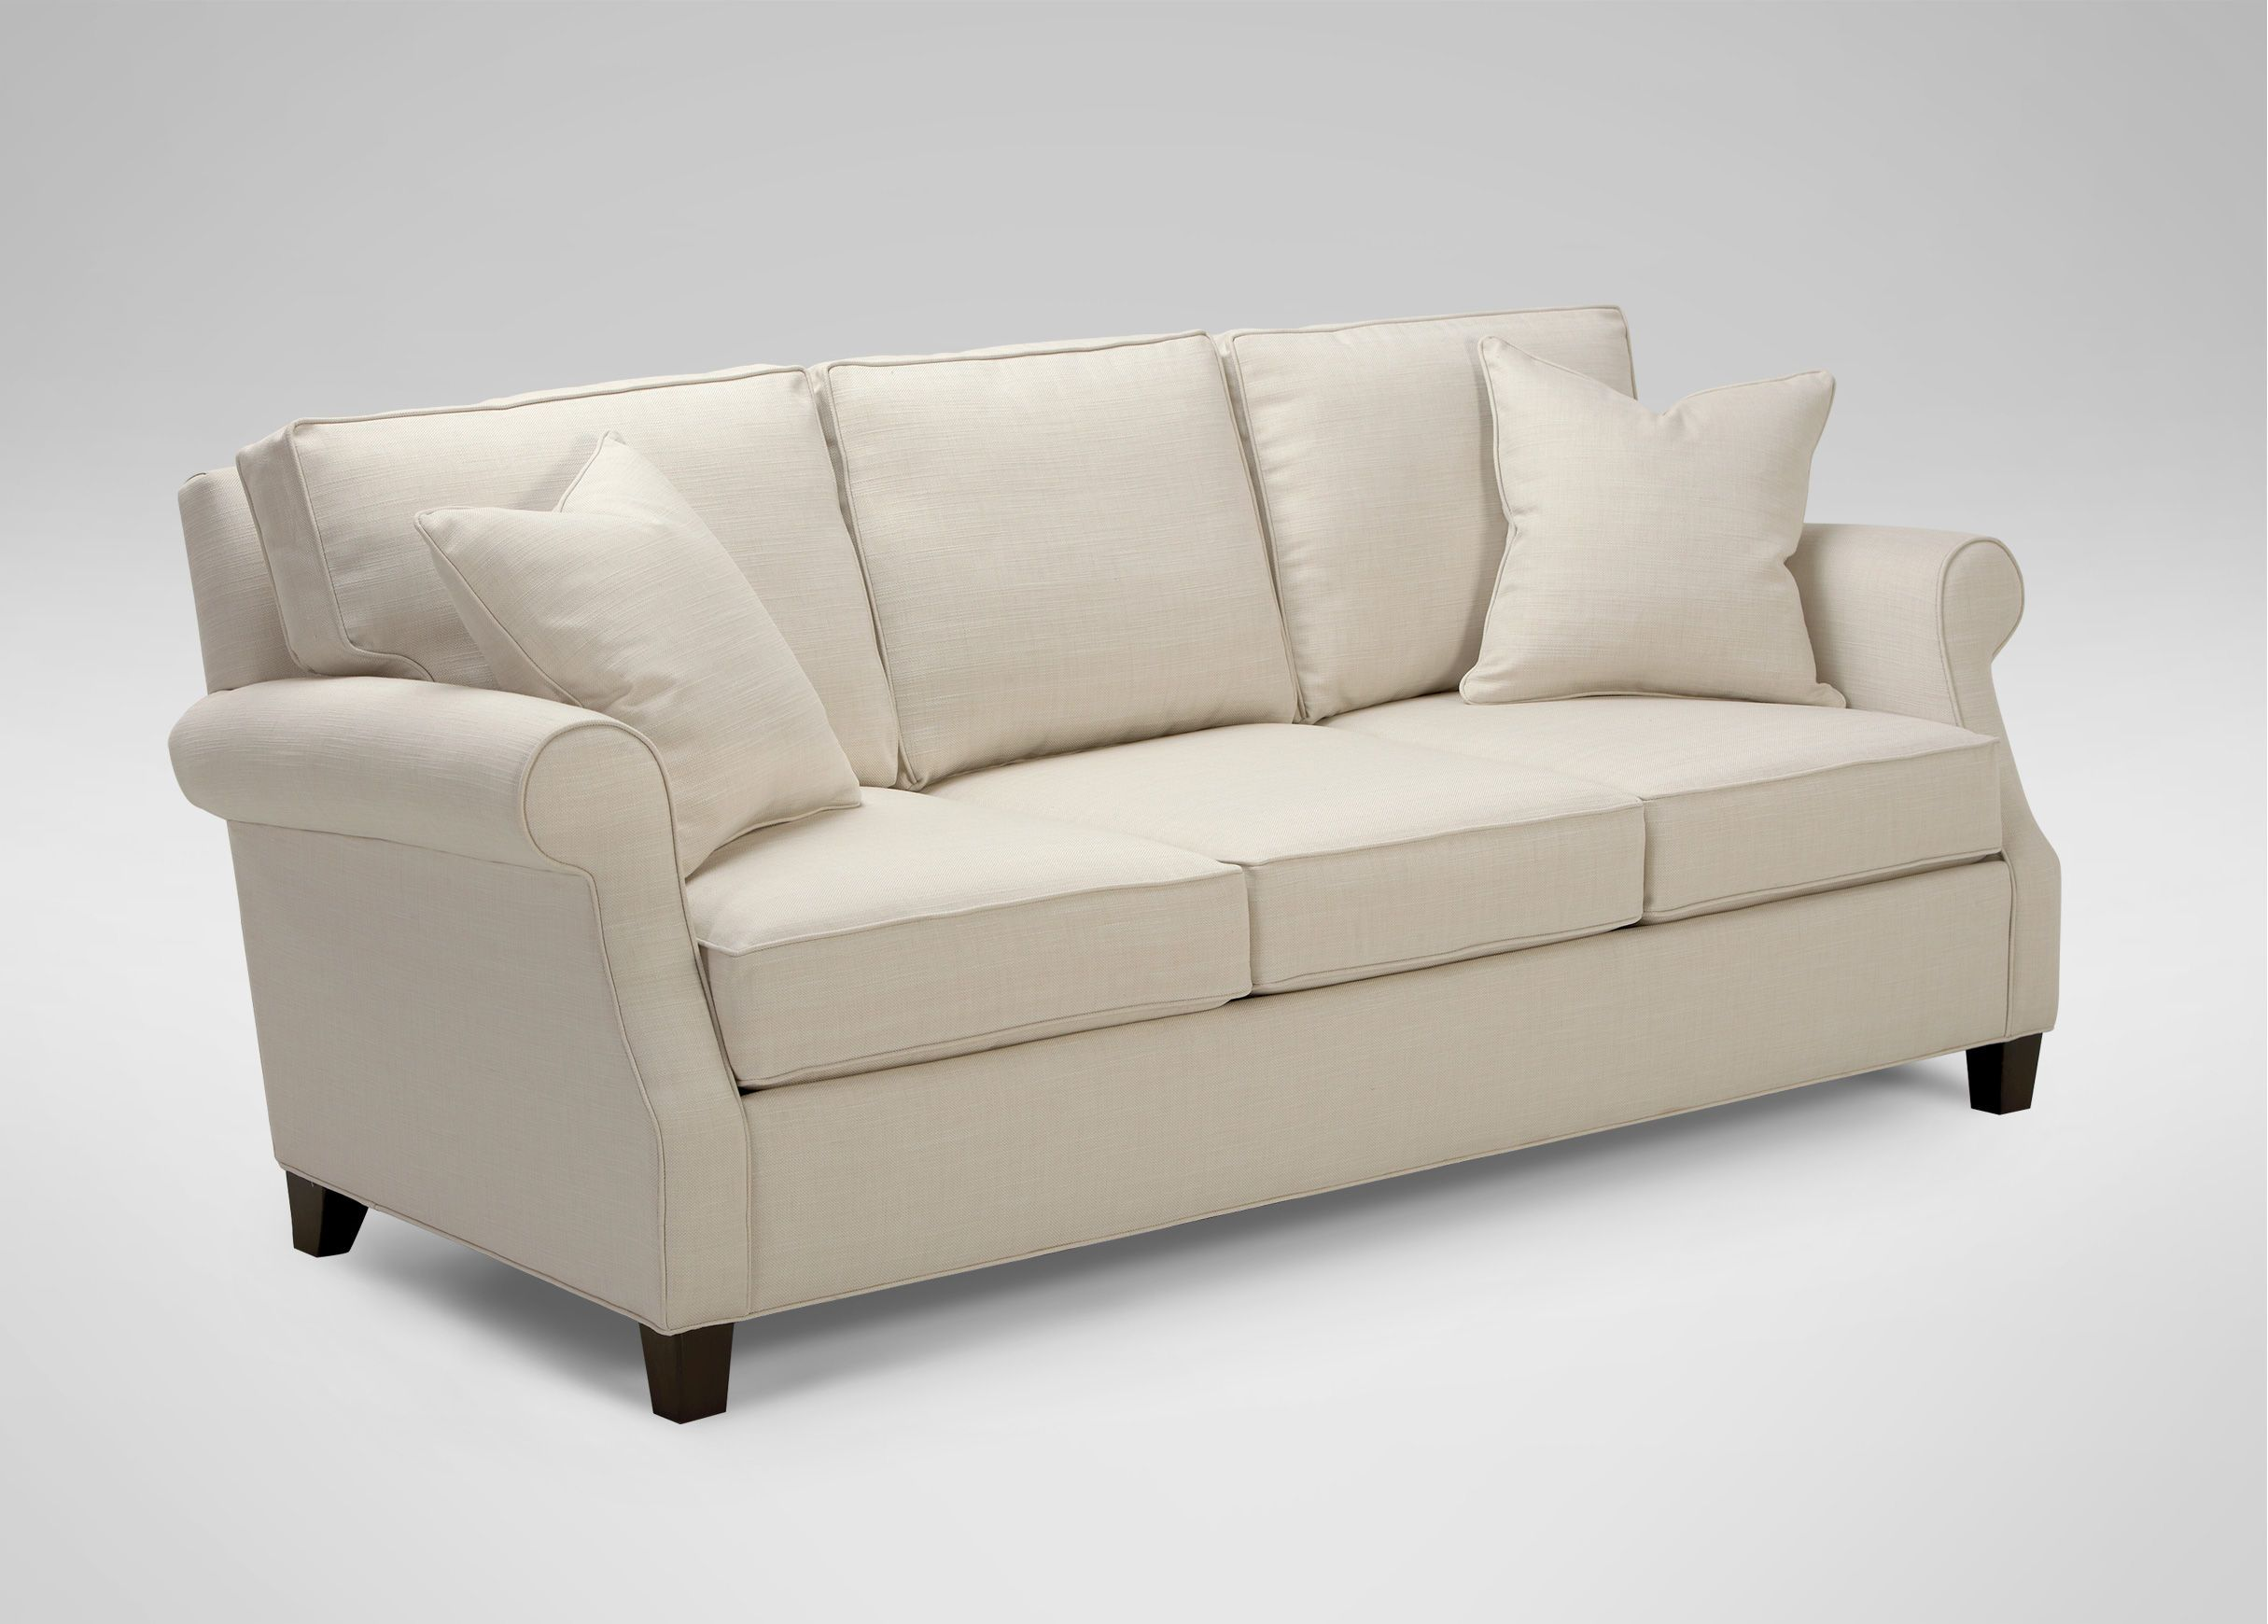 Ellington Sofa Springer White Furniture Sofa Love